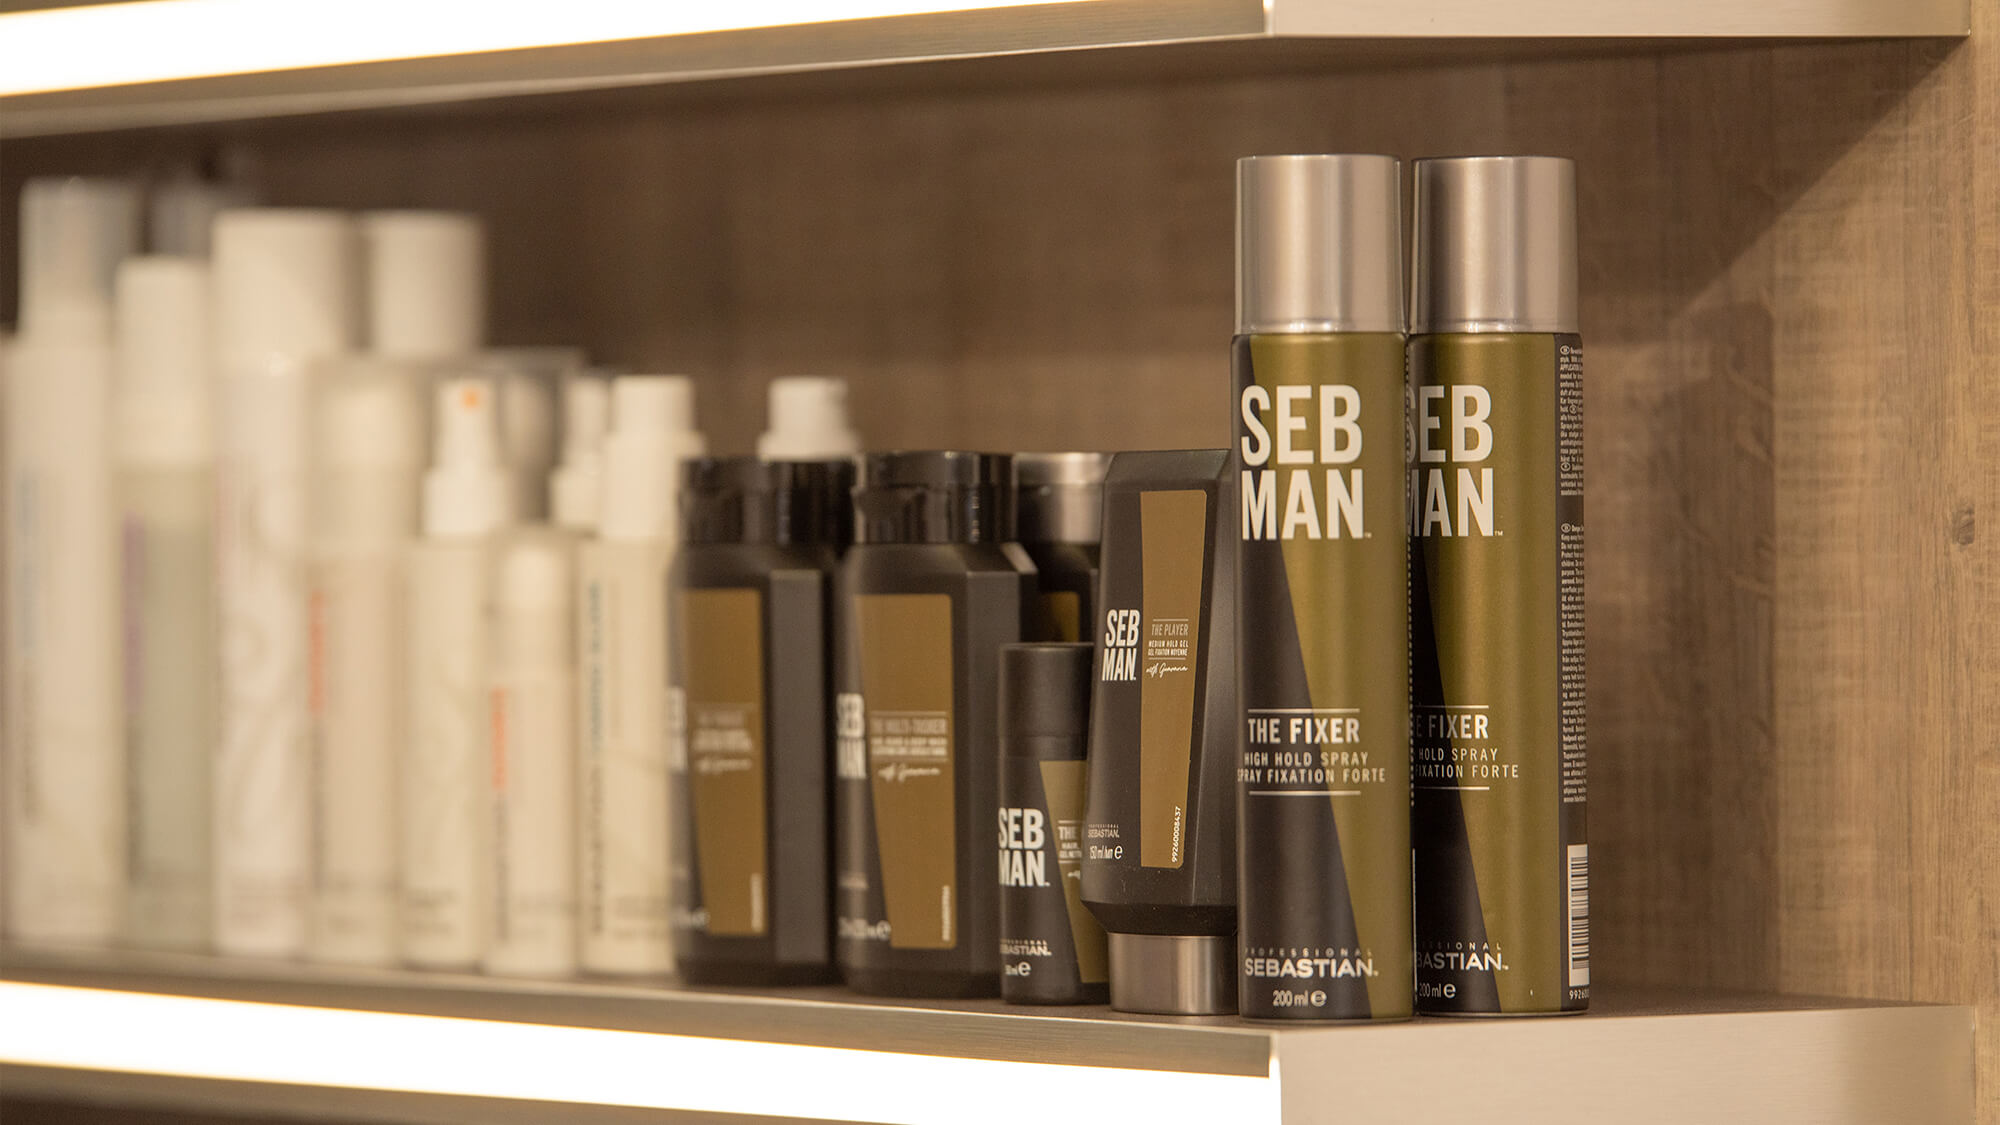 Seb man products